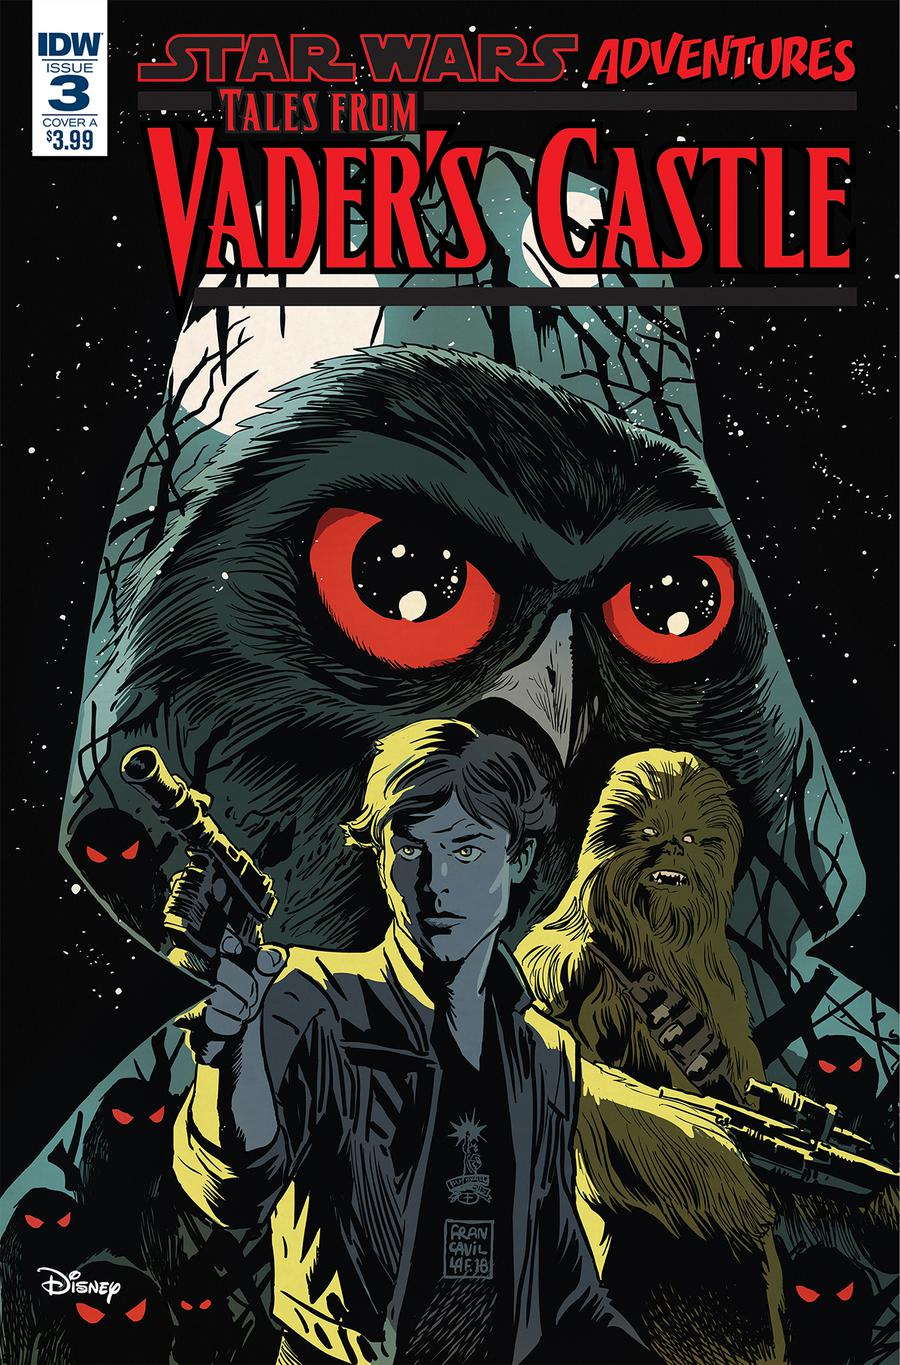 Star Wars Adventures Tales From Vaders Castle #3 Cover A Regular Francesco Francavilla Cover